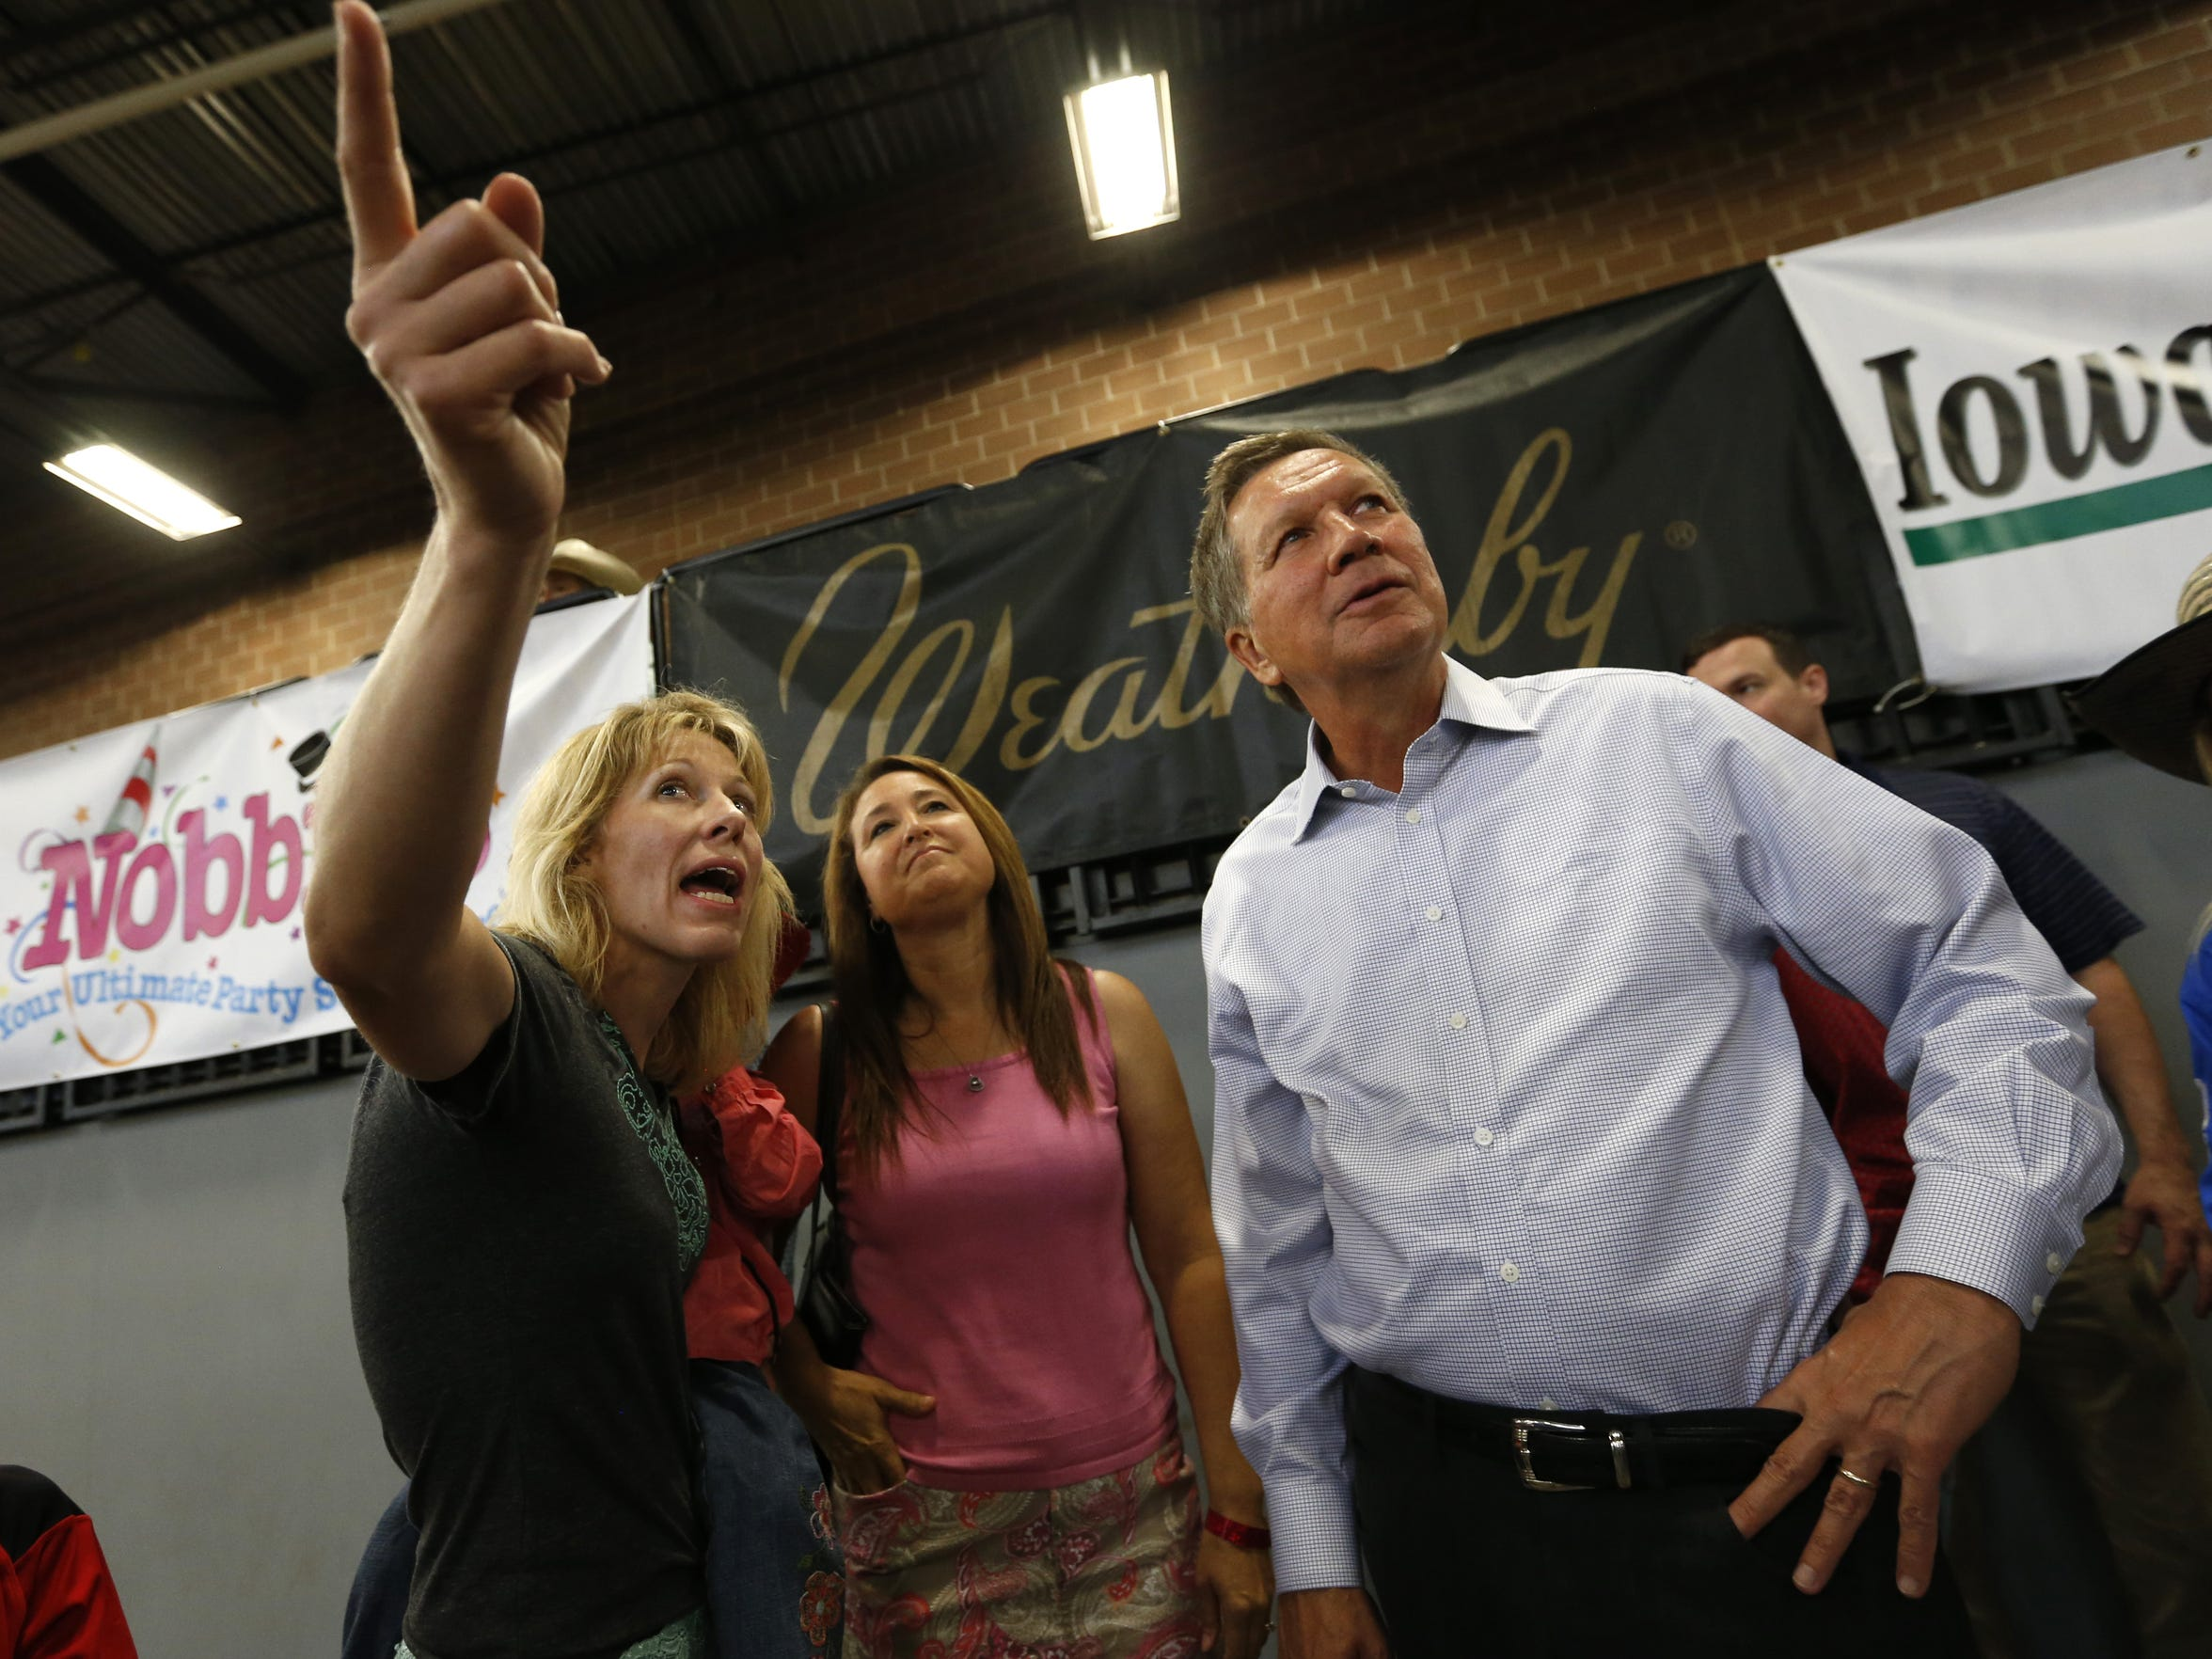 Tess Elshoff of New Knoxville, Ohio (from left) and Rita Jarvis of Salem, Ohio, explain how the breakaway event is scored to Ohio Governor John Kasich Wednesday, June 24, 2015, as Kasich stops by the National Junior High Finals Rodeo event at the Iowa State Fair Grounds in Des Moines, Iowa.